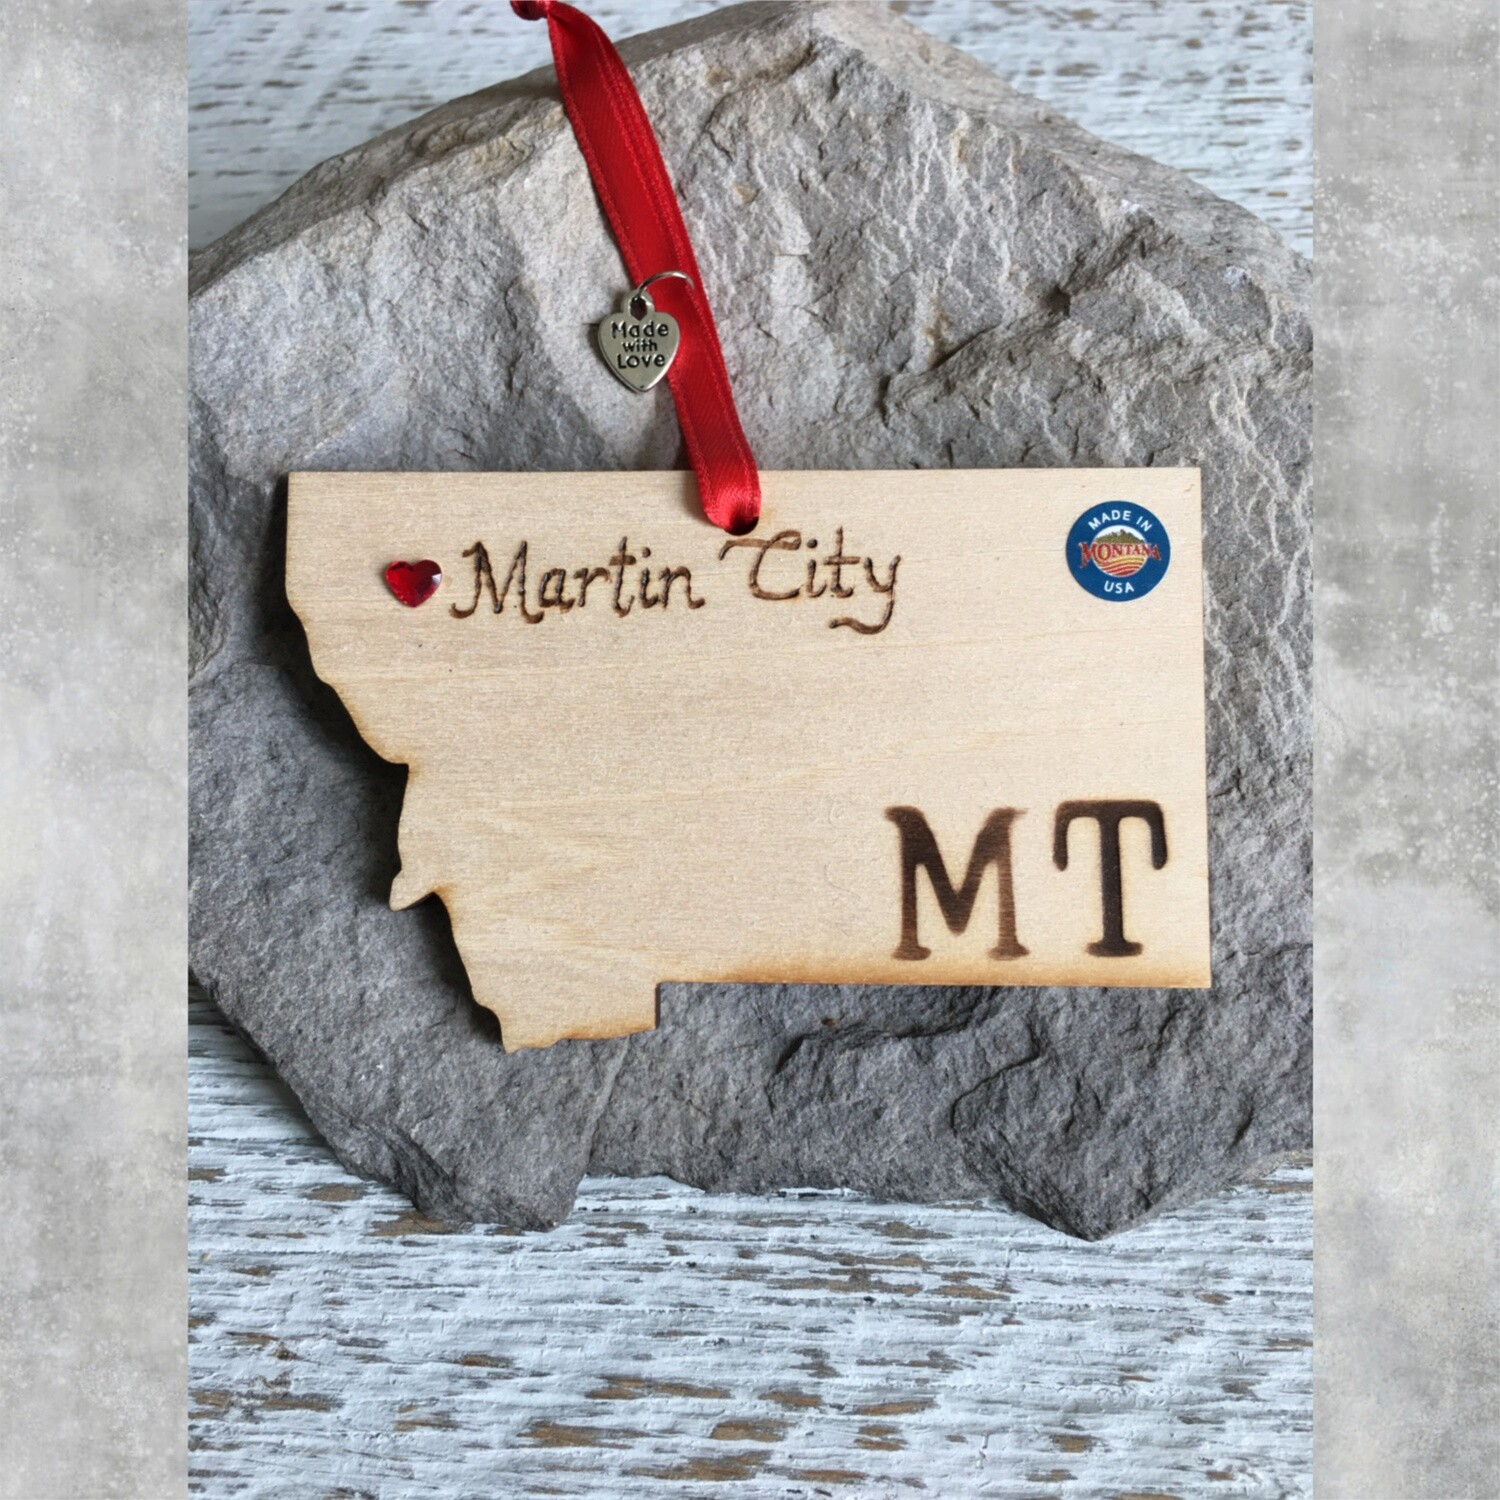 40-20 Martin City MT Ornament